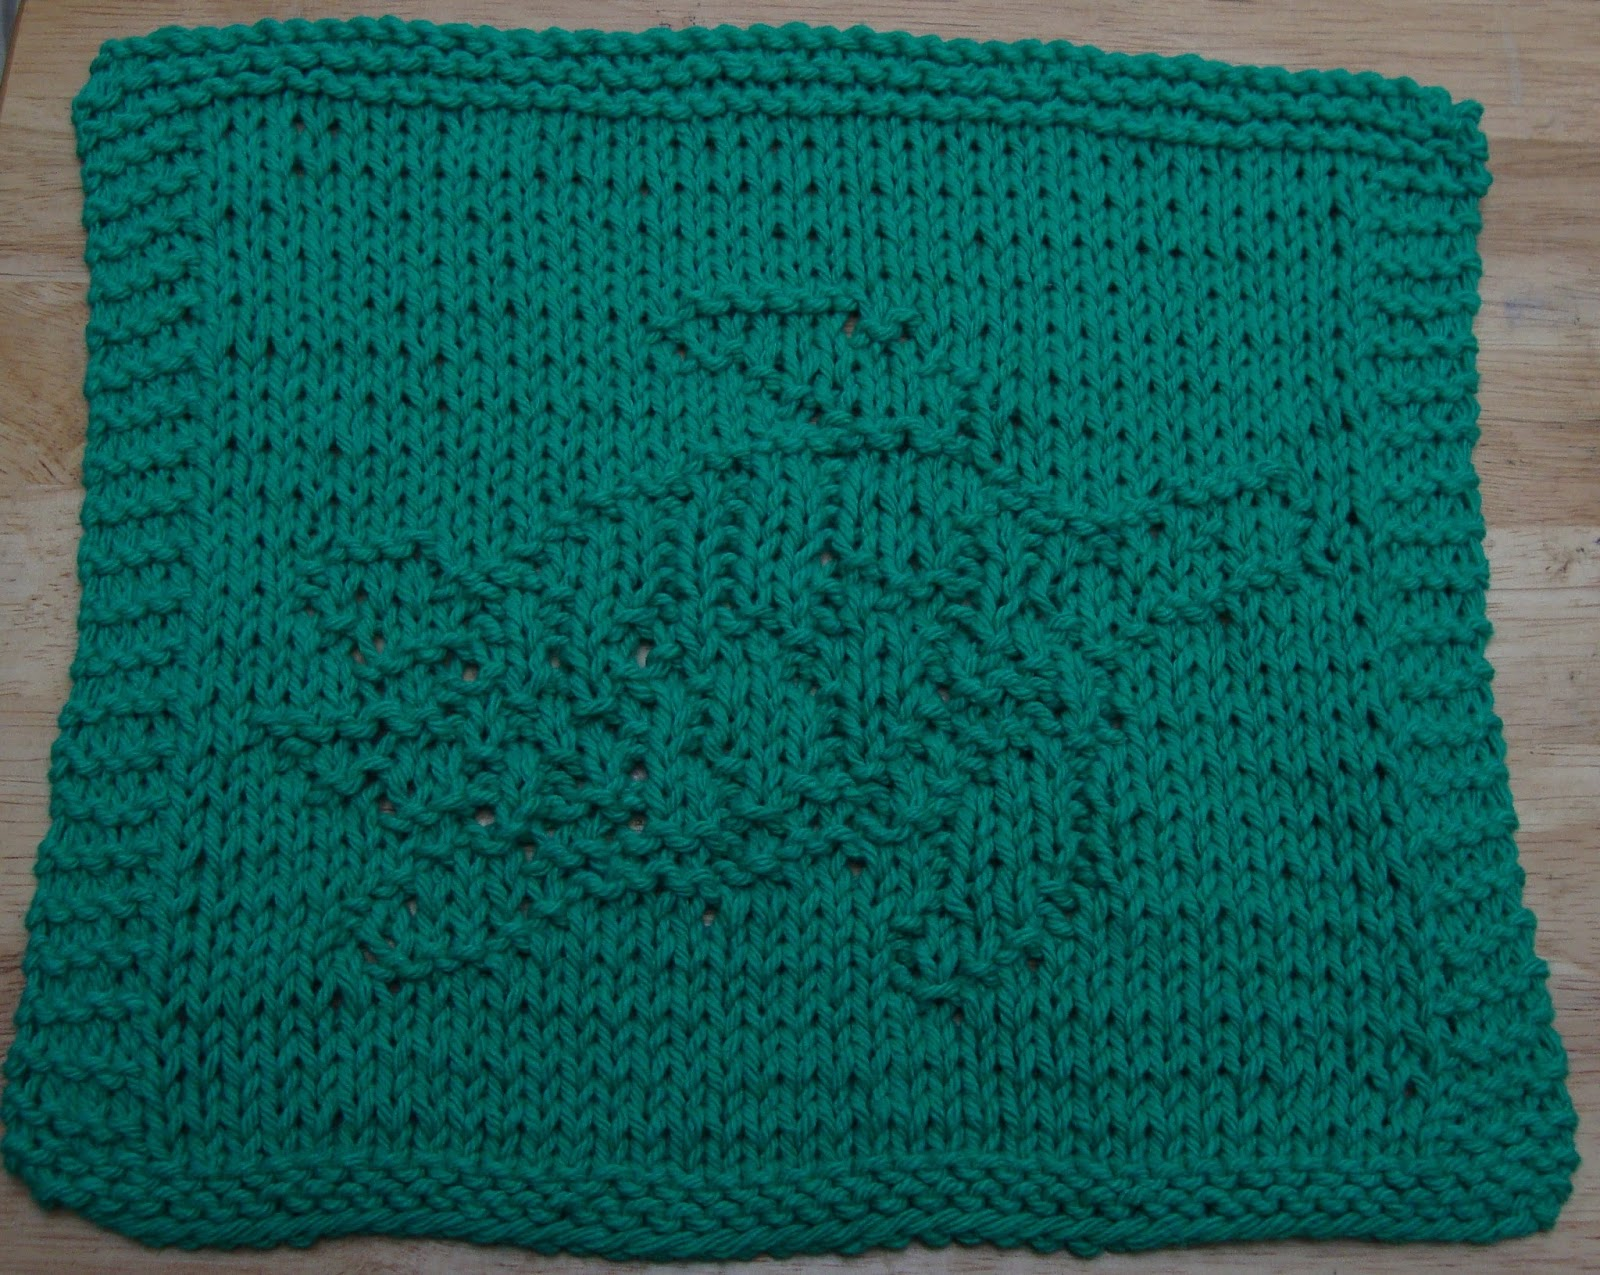 Trapper Hat Knitting Pattern : DigKnitty Designs: Sea Turtle Knit Dishcloth Pattern